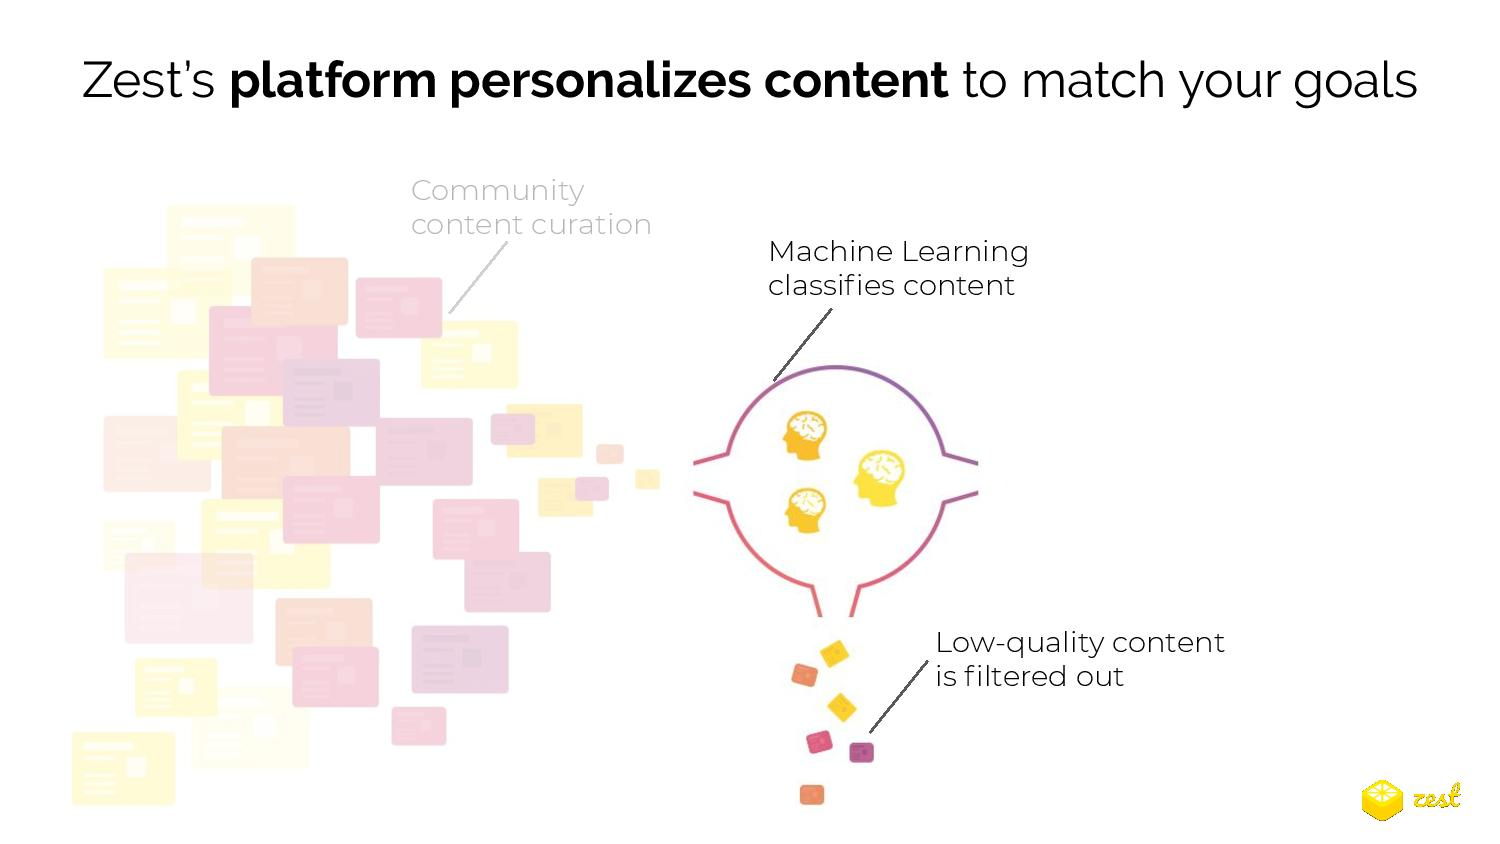 Zest's platform personalizes content to match your goals with a machine learning content classification system that filters out low-quality content